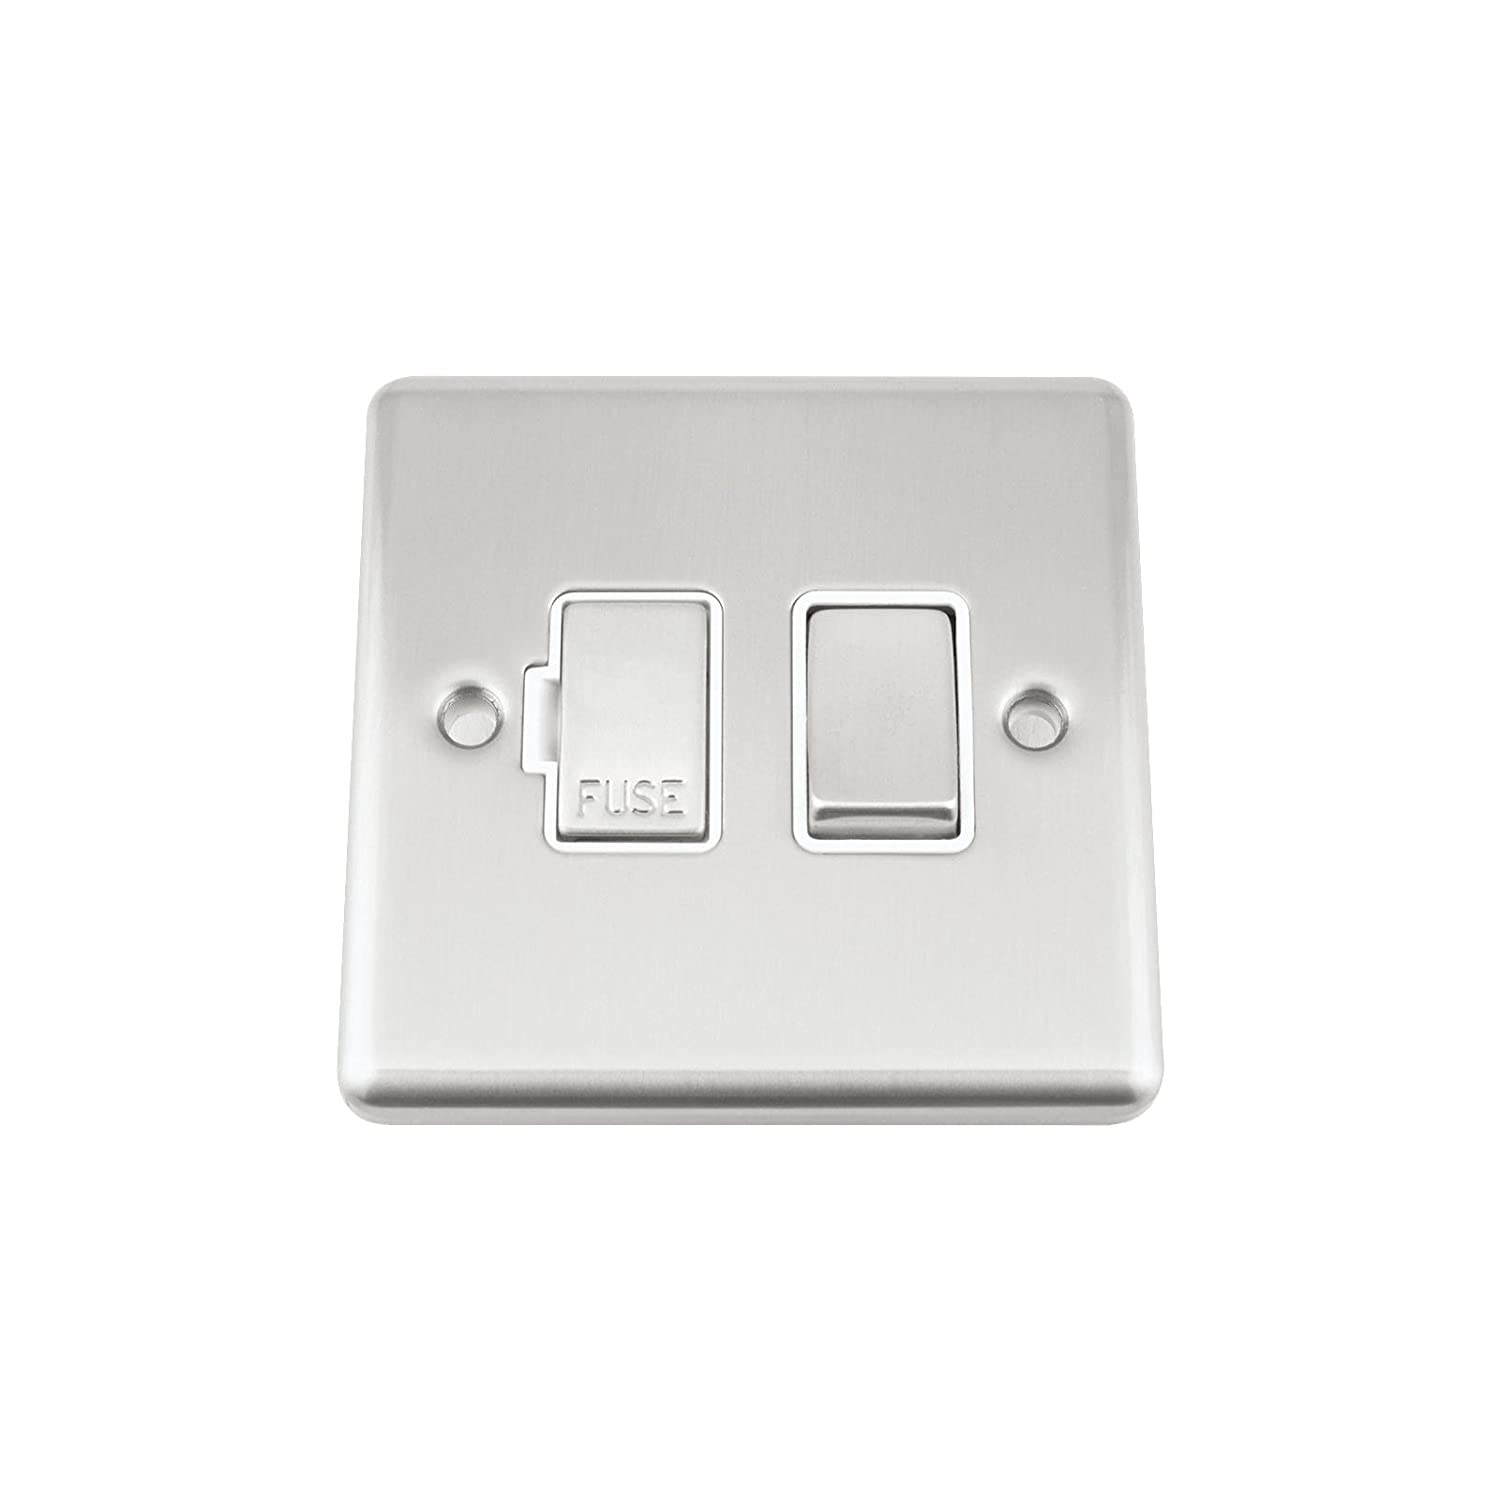 Classic Style new Satin Matt Brushed Chrome A5 Switched Fused Spur White Insert Metal Rocker